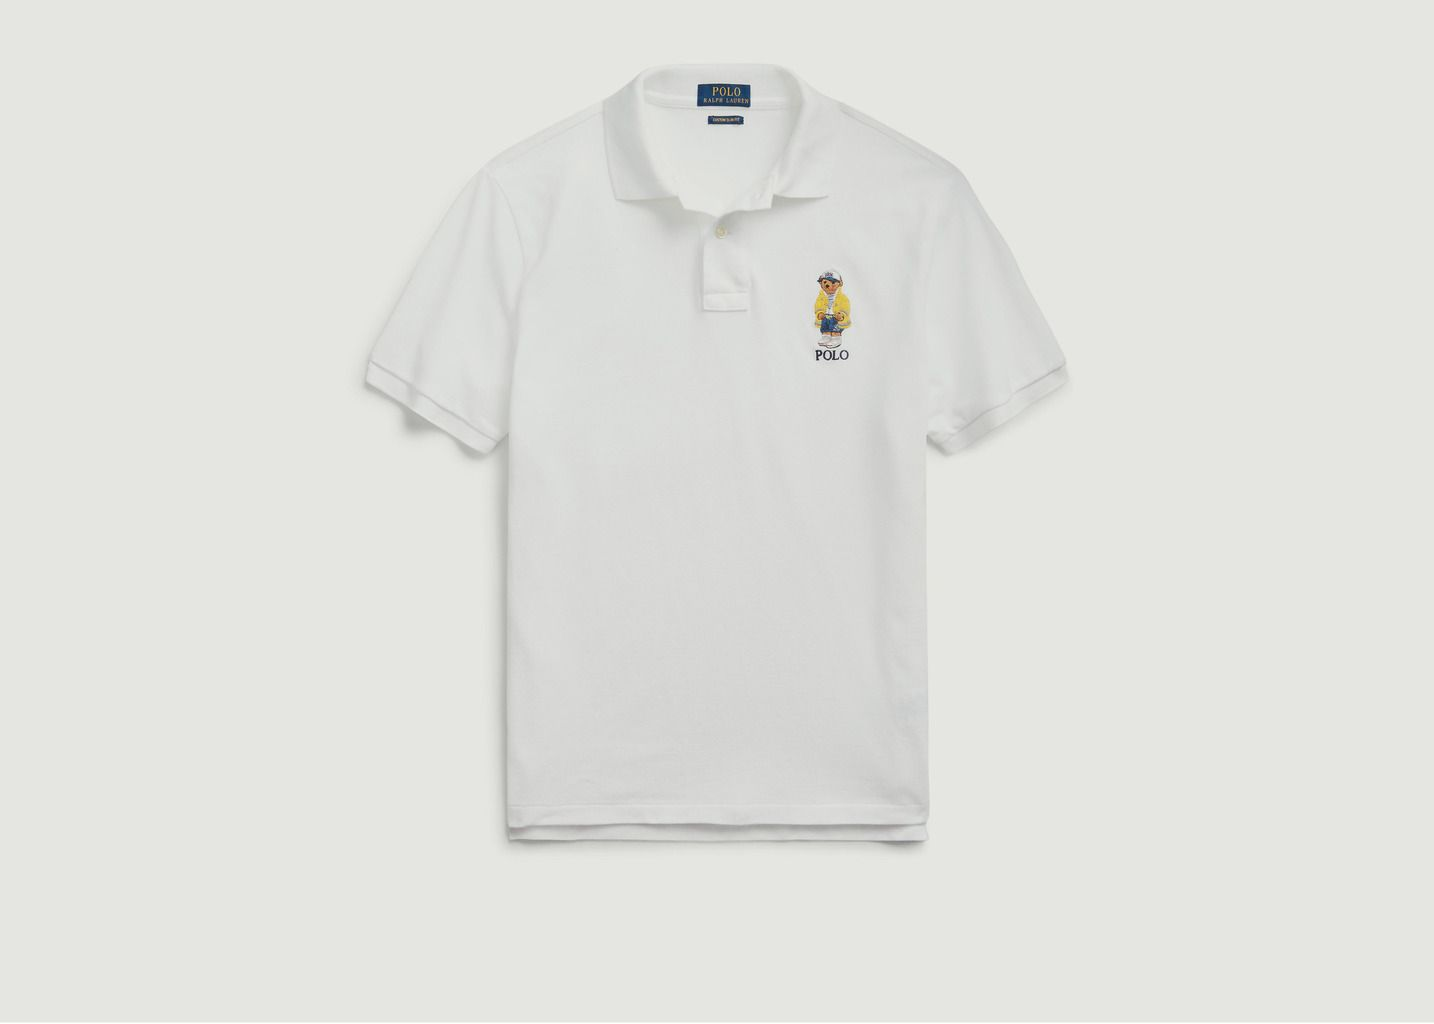 Polo Brodé Ours - Polo Ralph Lauren